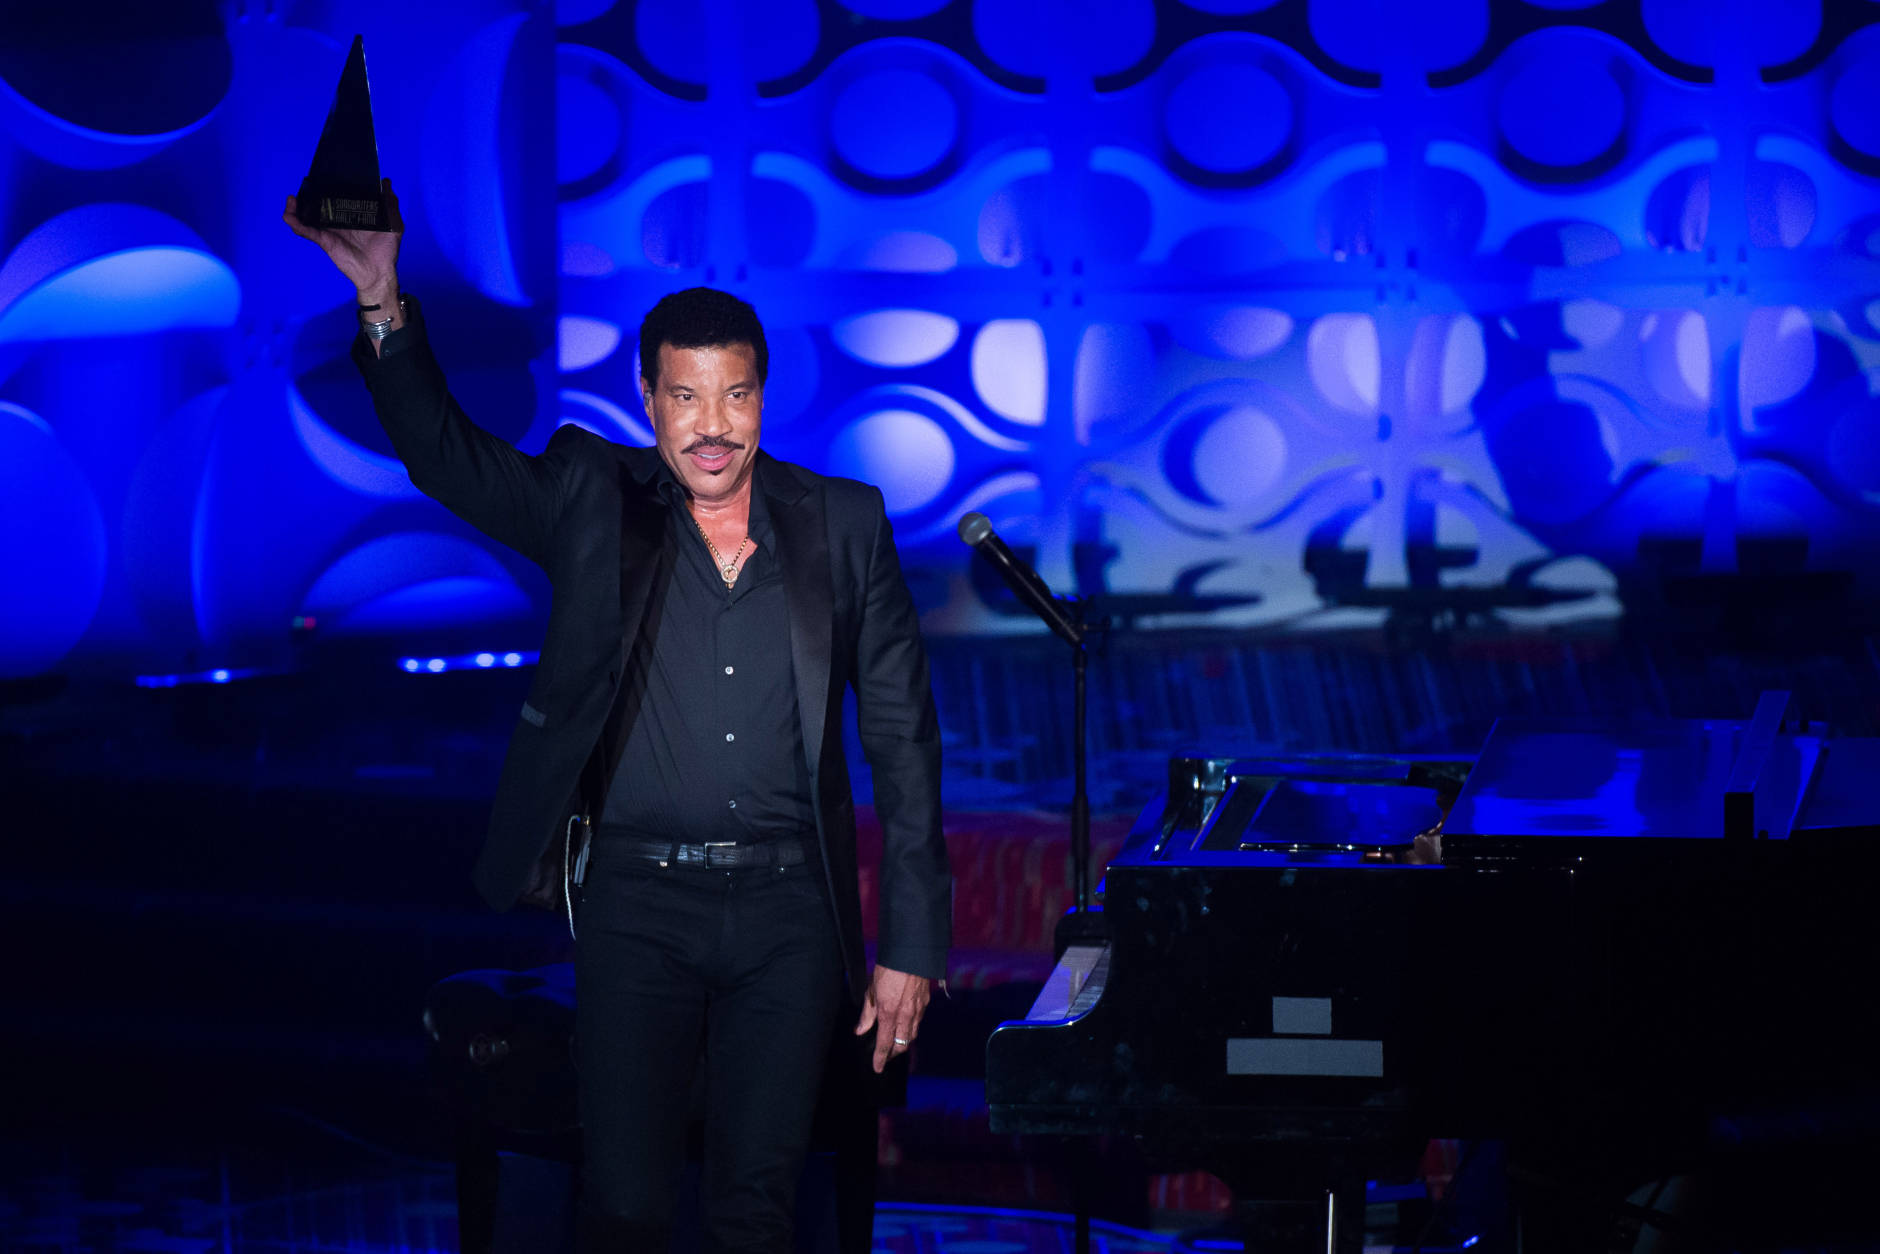 Lionel Richie will perform at MGM National Harbor Dec, 22, 2016. (Photo by Charles Sykes/Invision/AP)